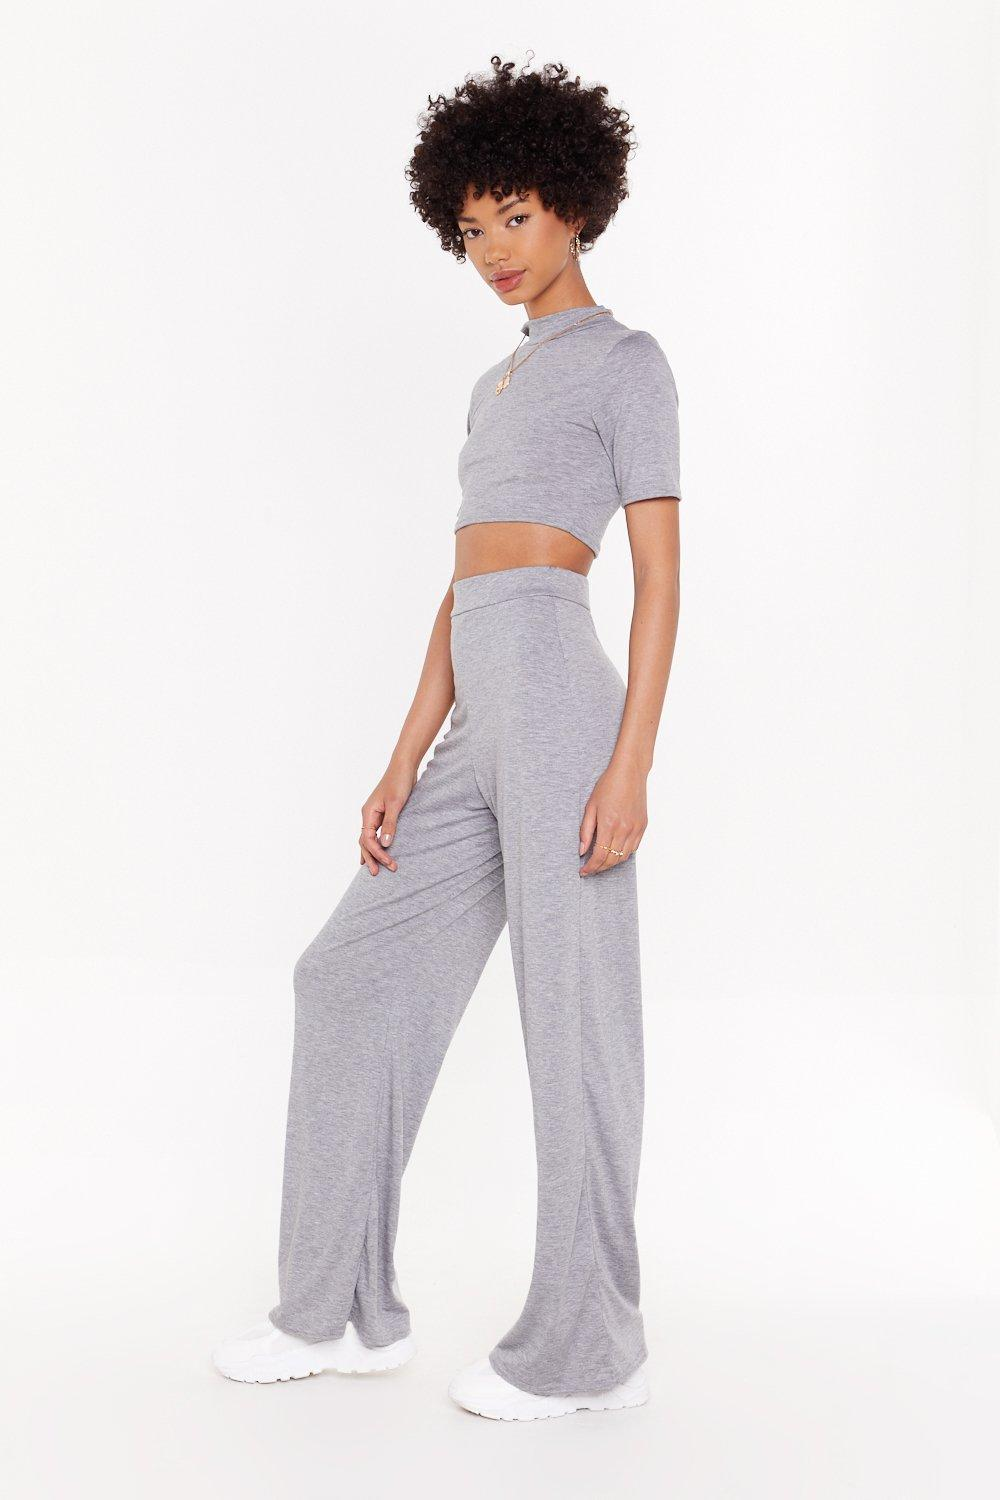 476ea9abcdbe Wide Leg & Sweat Co-ord Set   Shop Clothes at Nasty Gal!